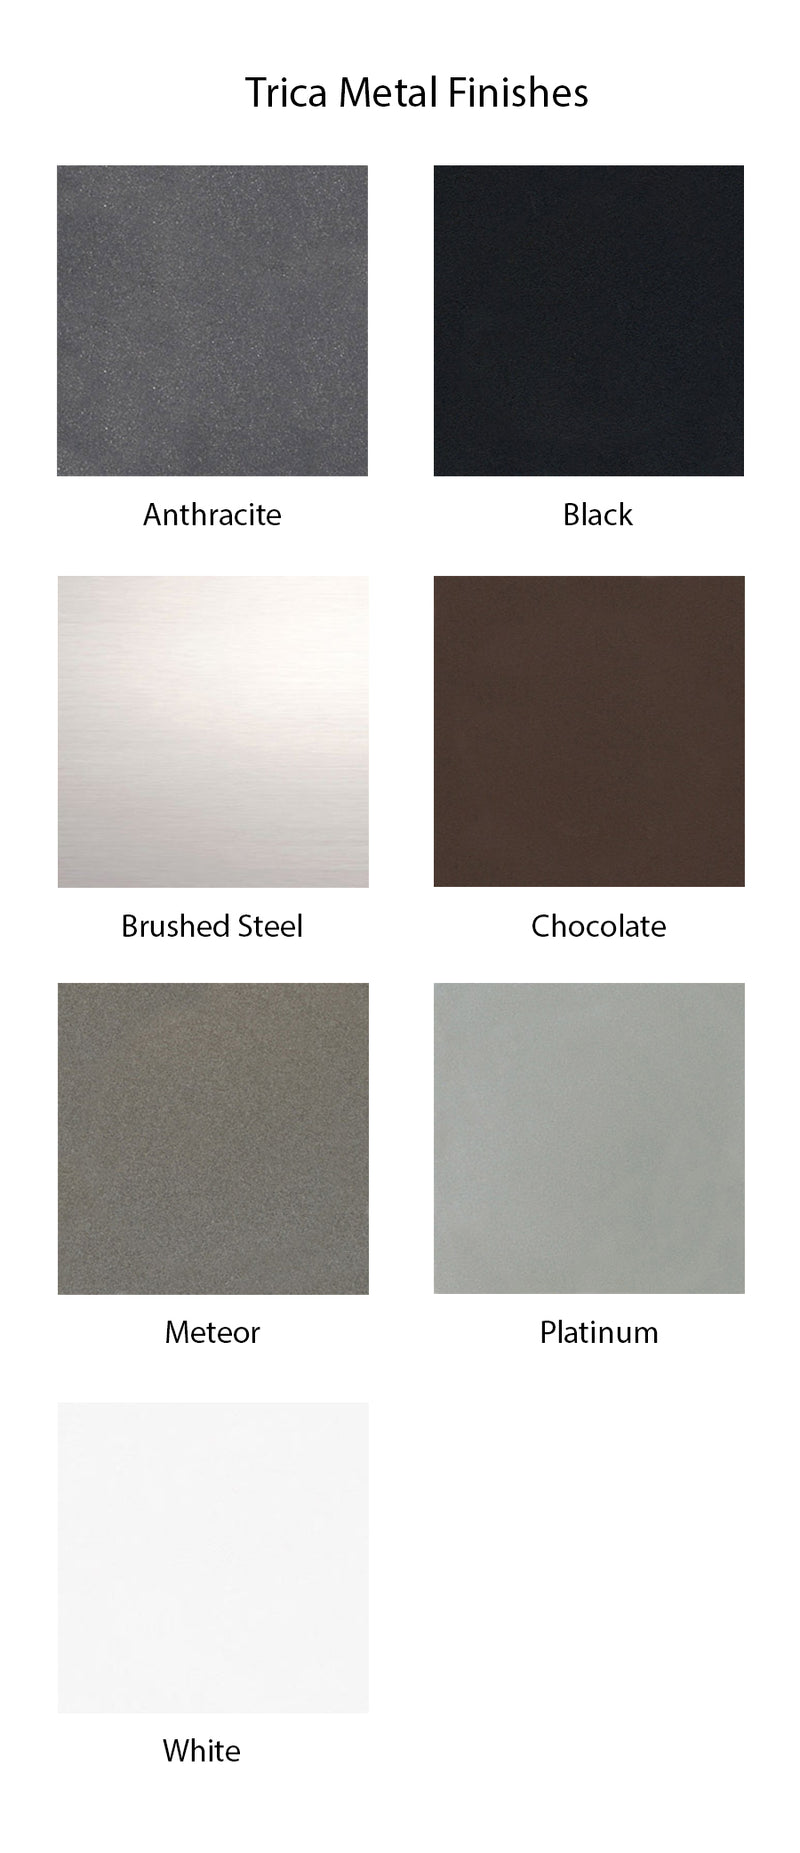 products/metal-finishes-trica_778d80a5-1180-40ae-b8f7-610224e0a529.jpg